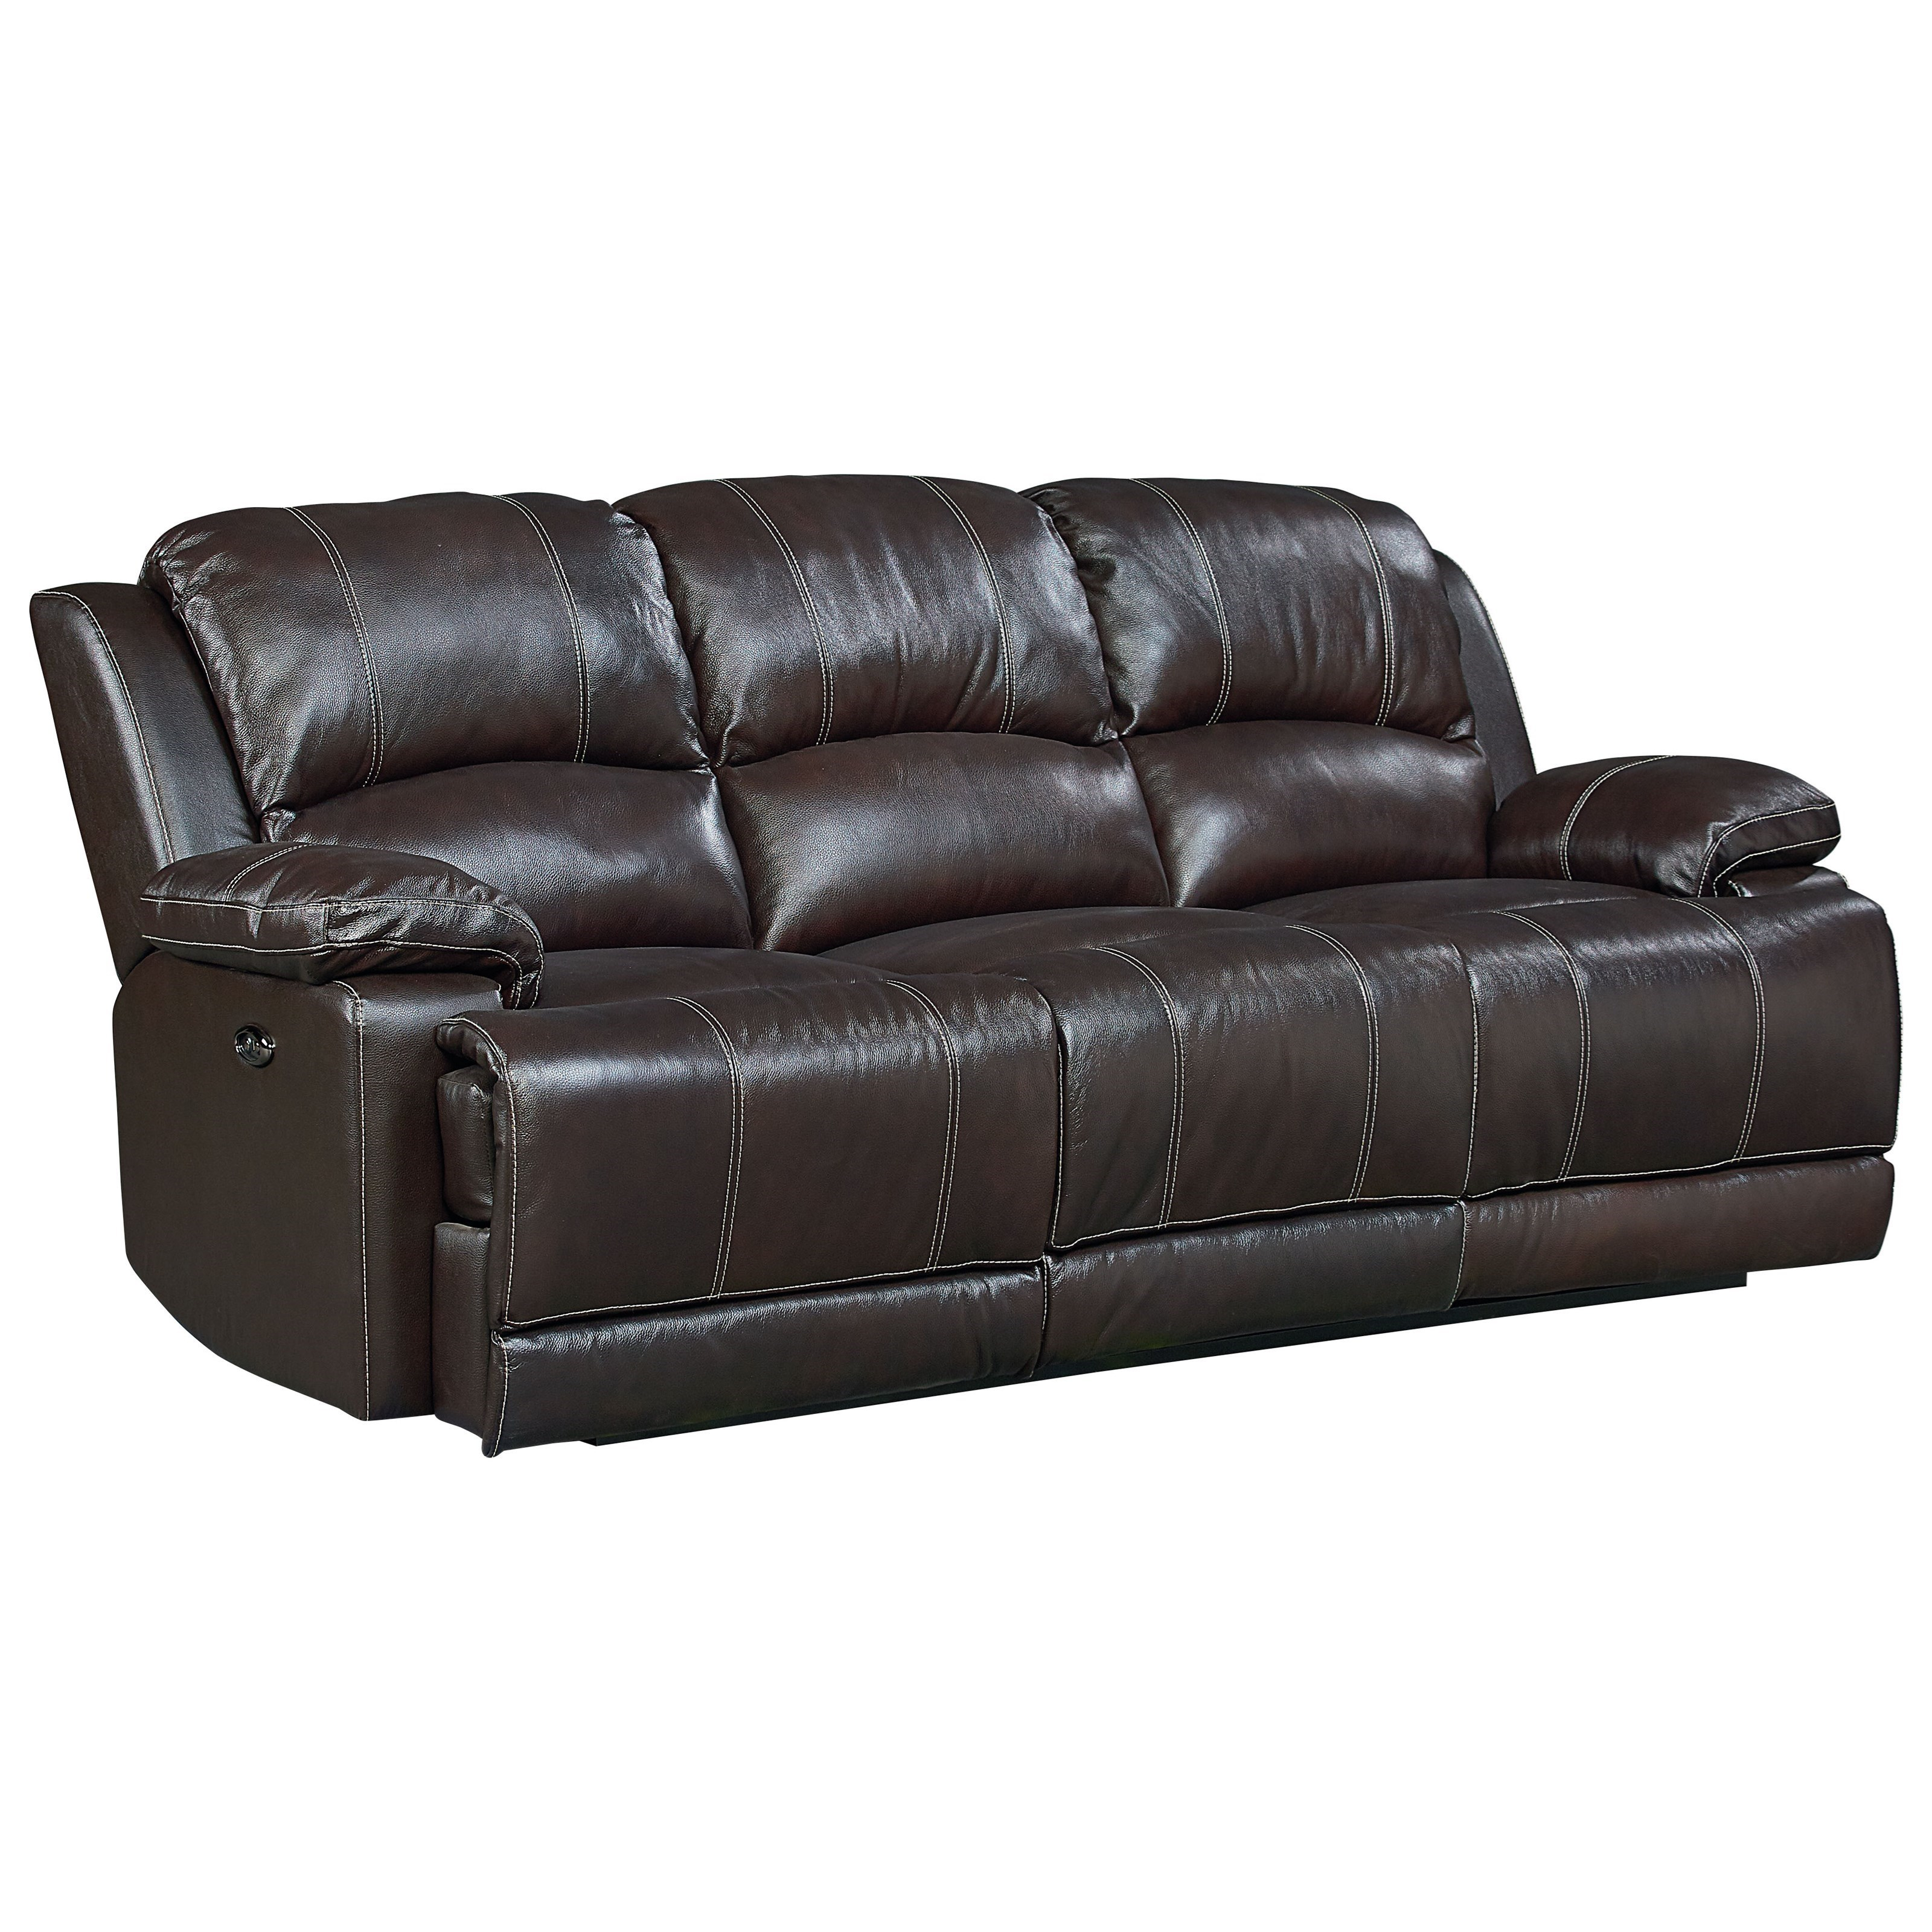 Standard Furniture Audubon Reclining Sofa - Item Number: 4002391